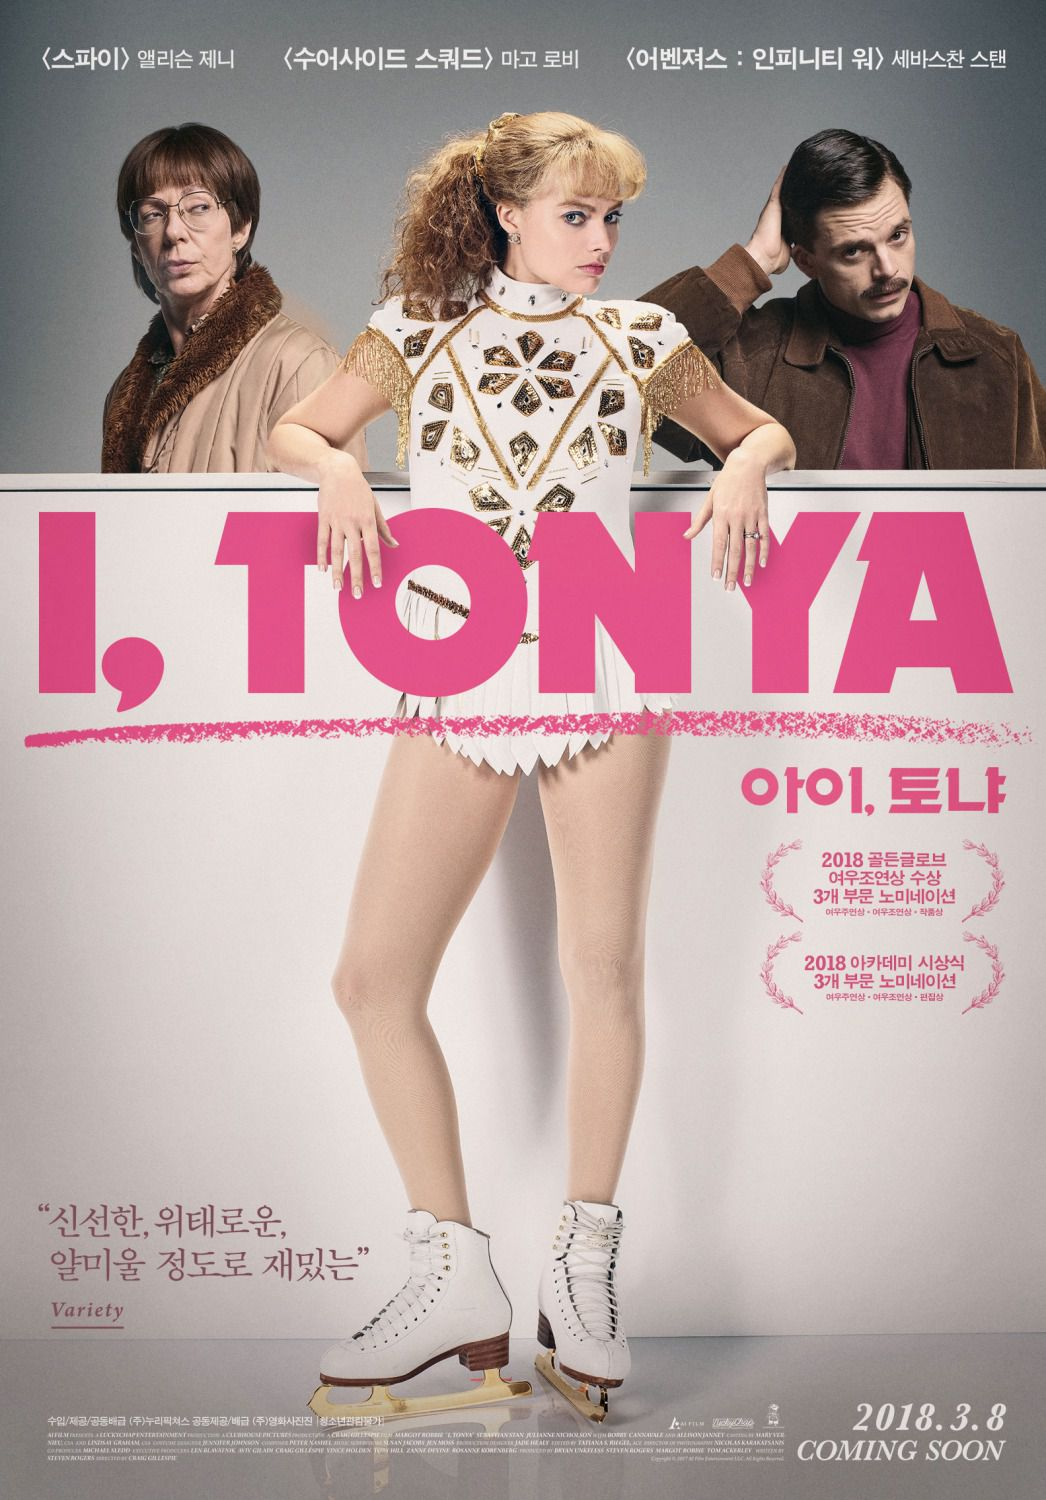 I Tonya - skating film poster - Margot Robbie, Allison Janney, Sebastian Stan, Julianne Nicholson